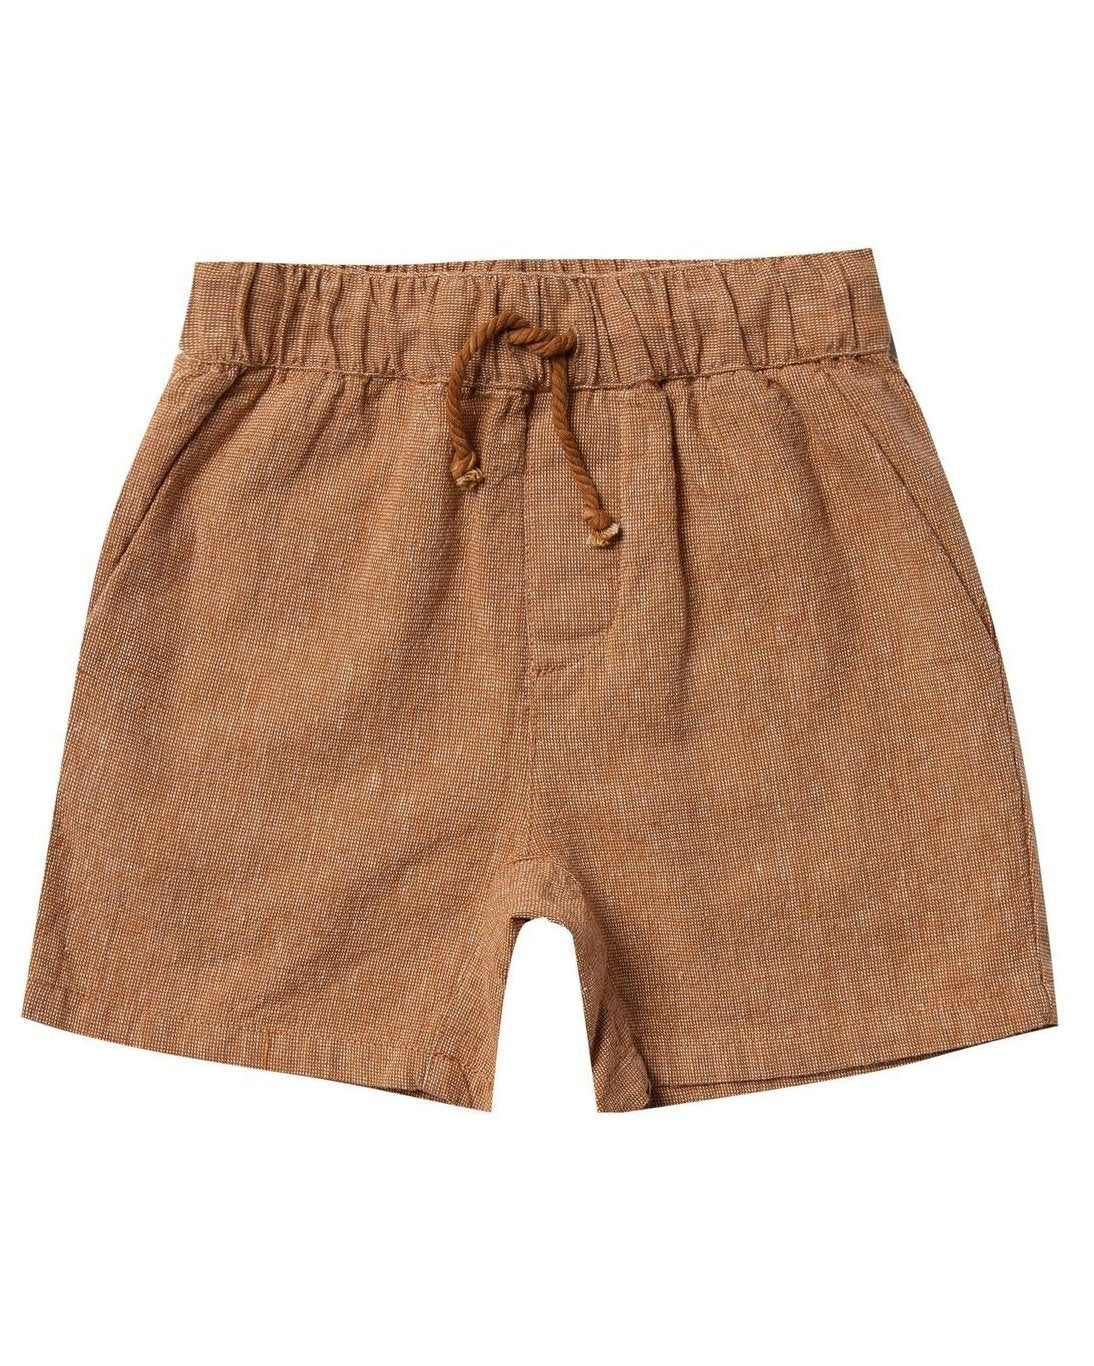 Little rylee + cru boy drawstring short in bronze